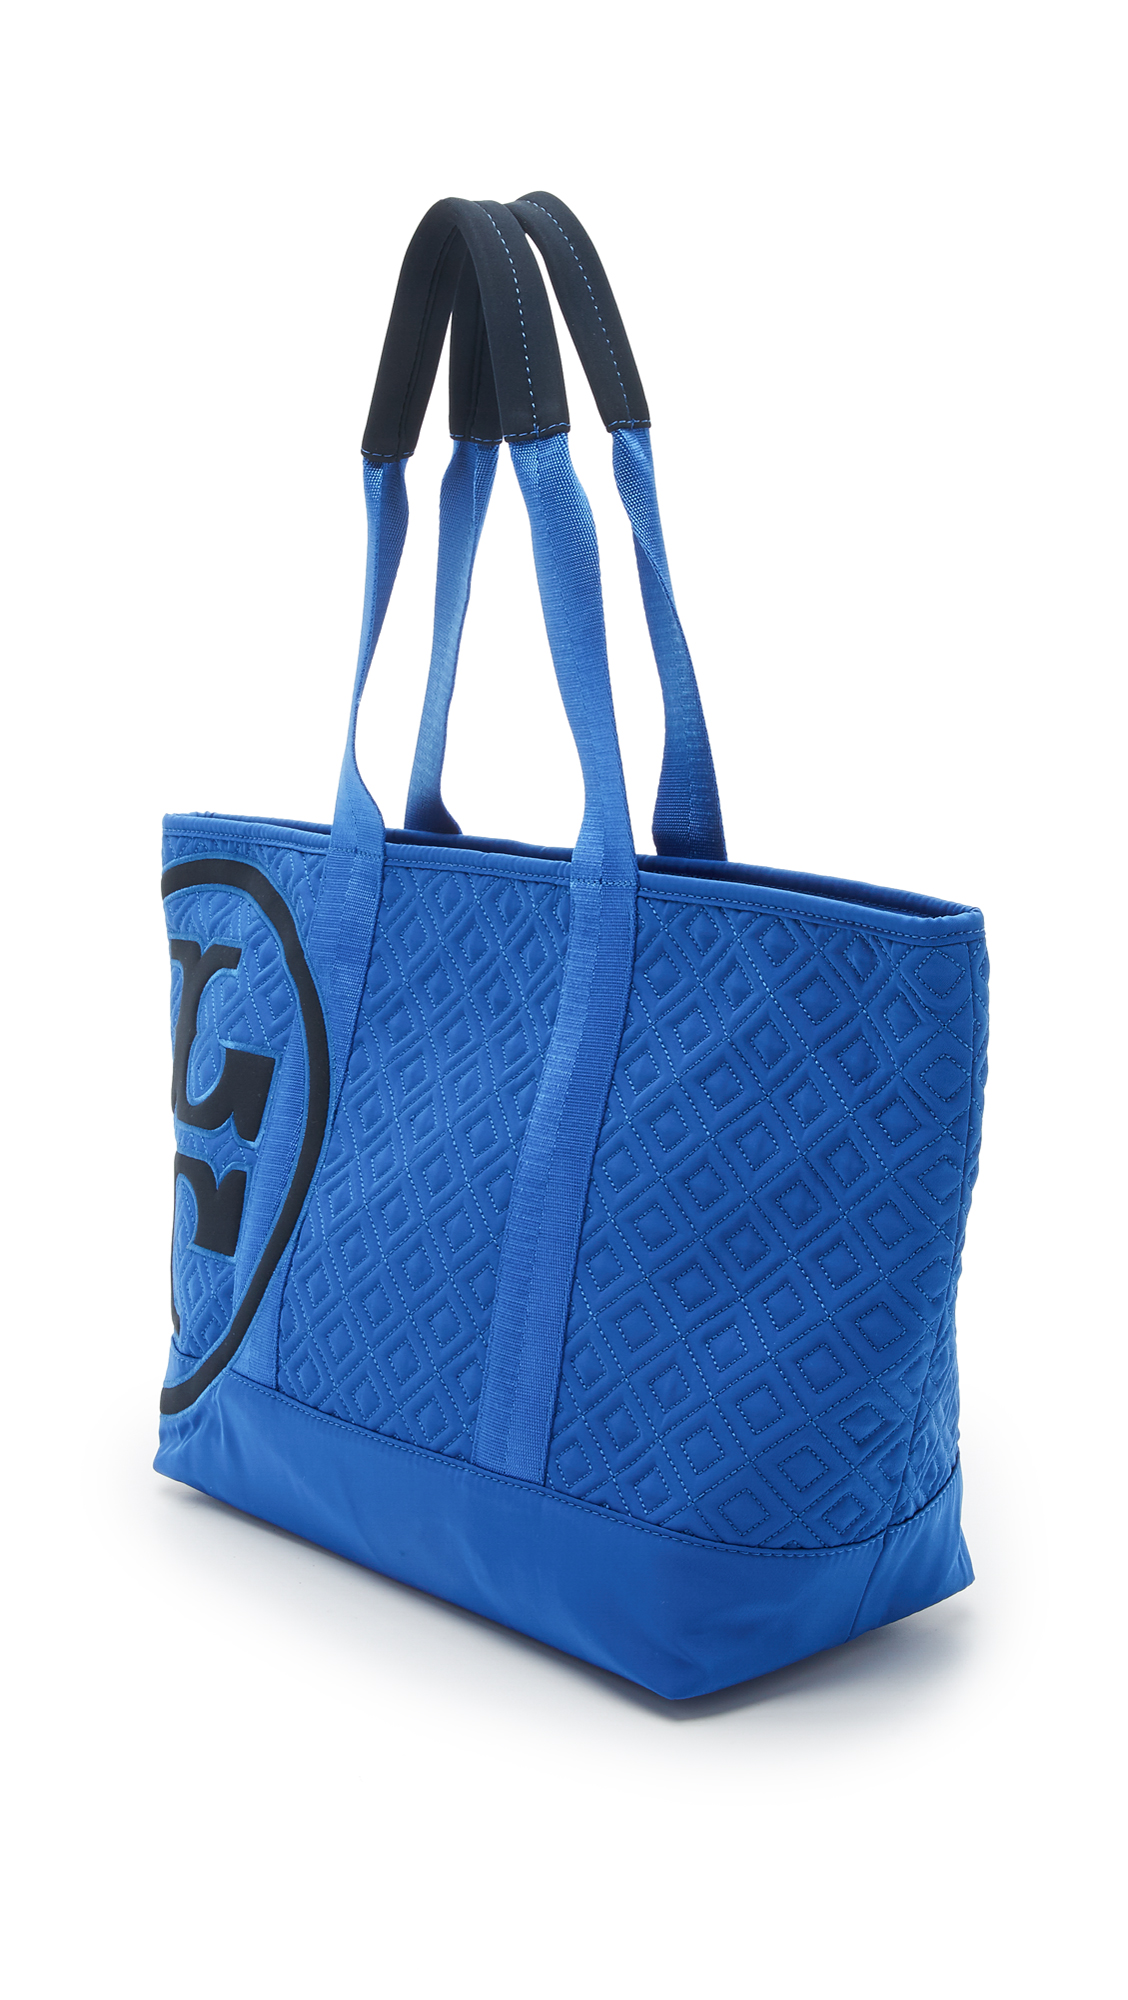 3978521fcc46 Tory Burch Penn Quilted Small Zip Tote